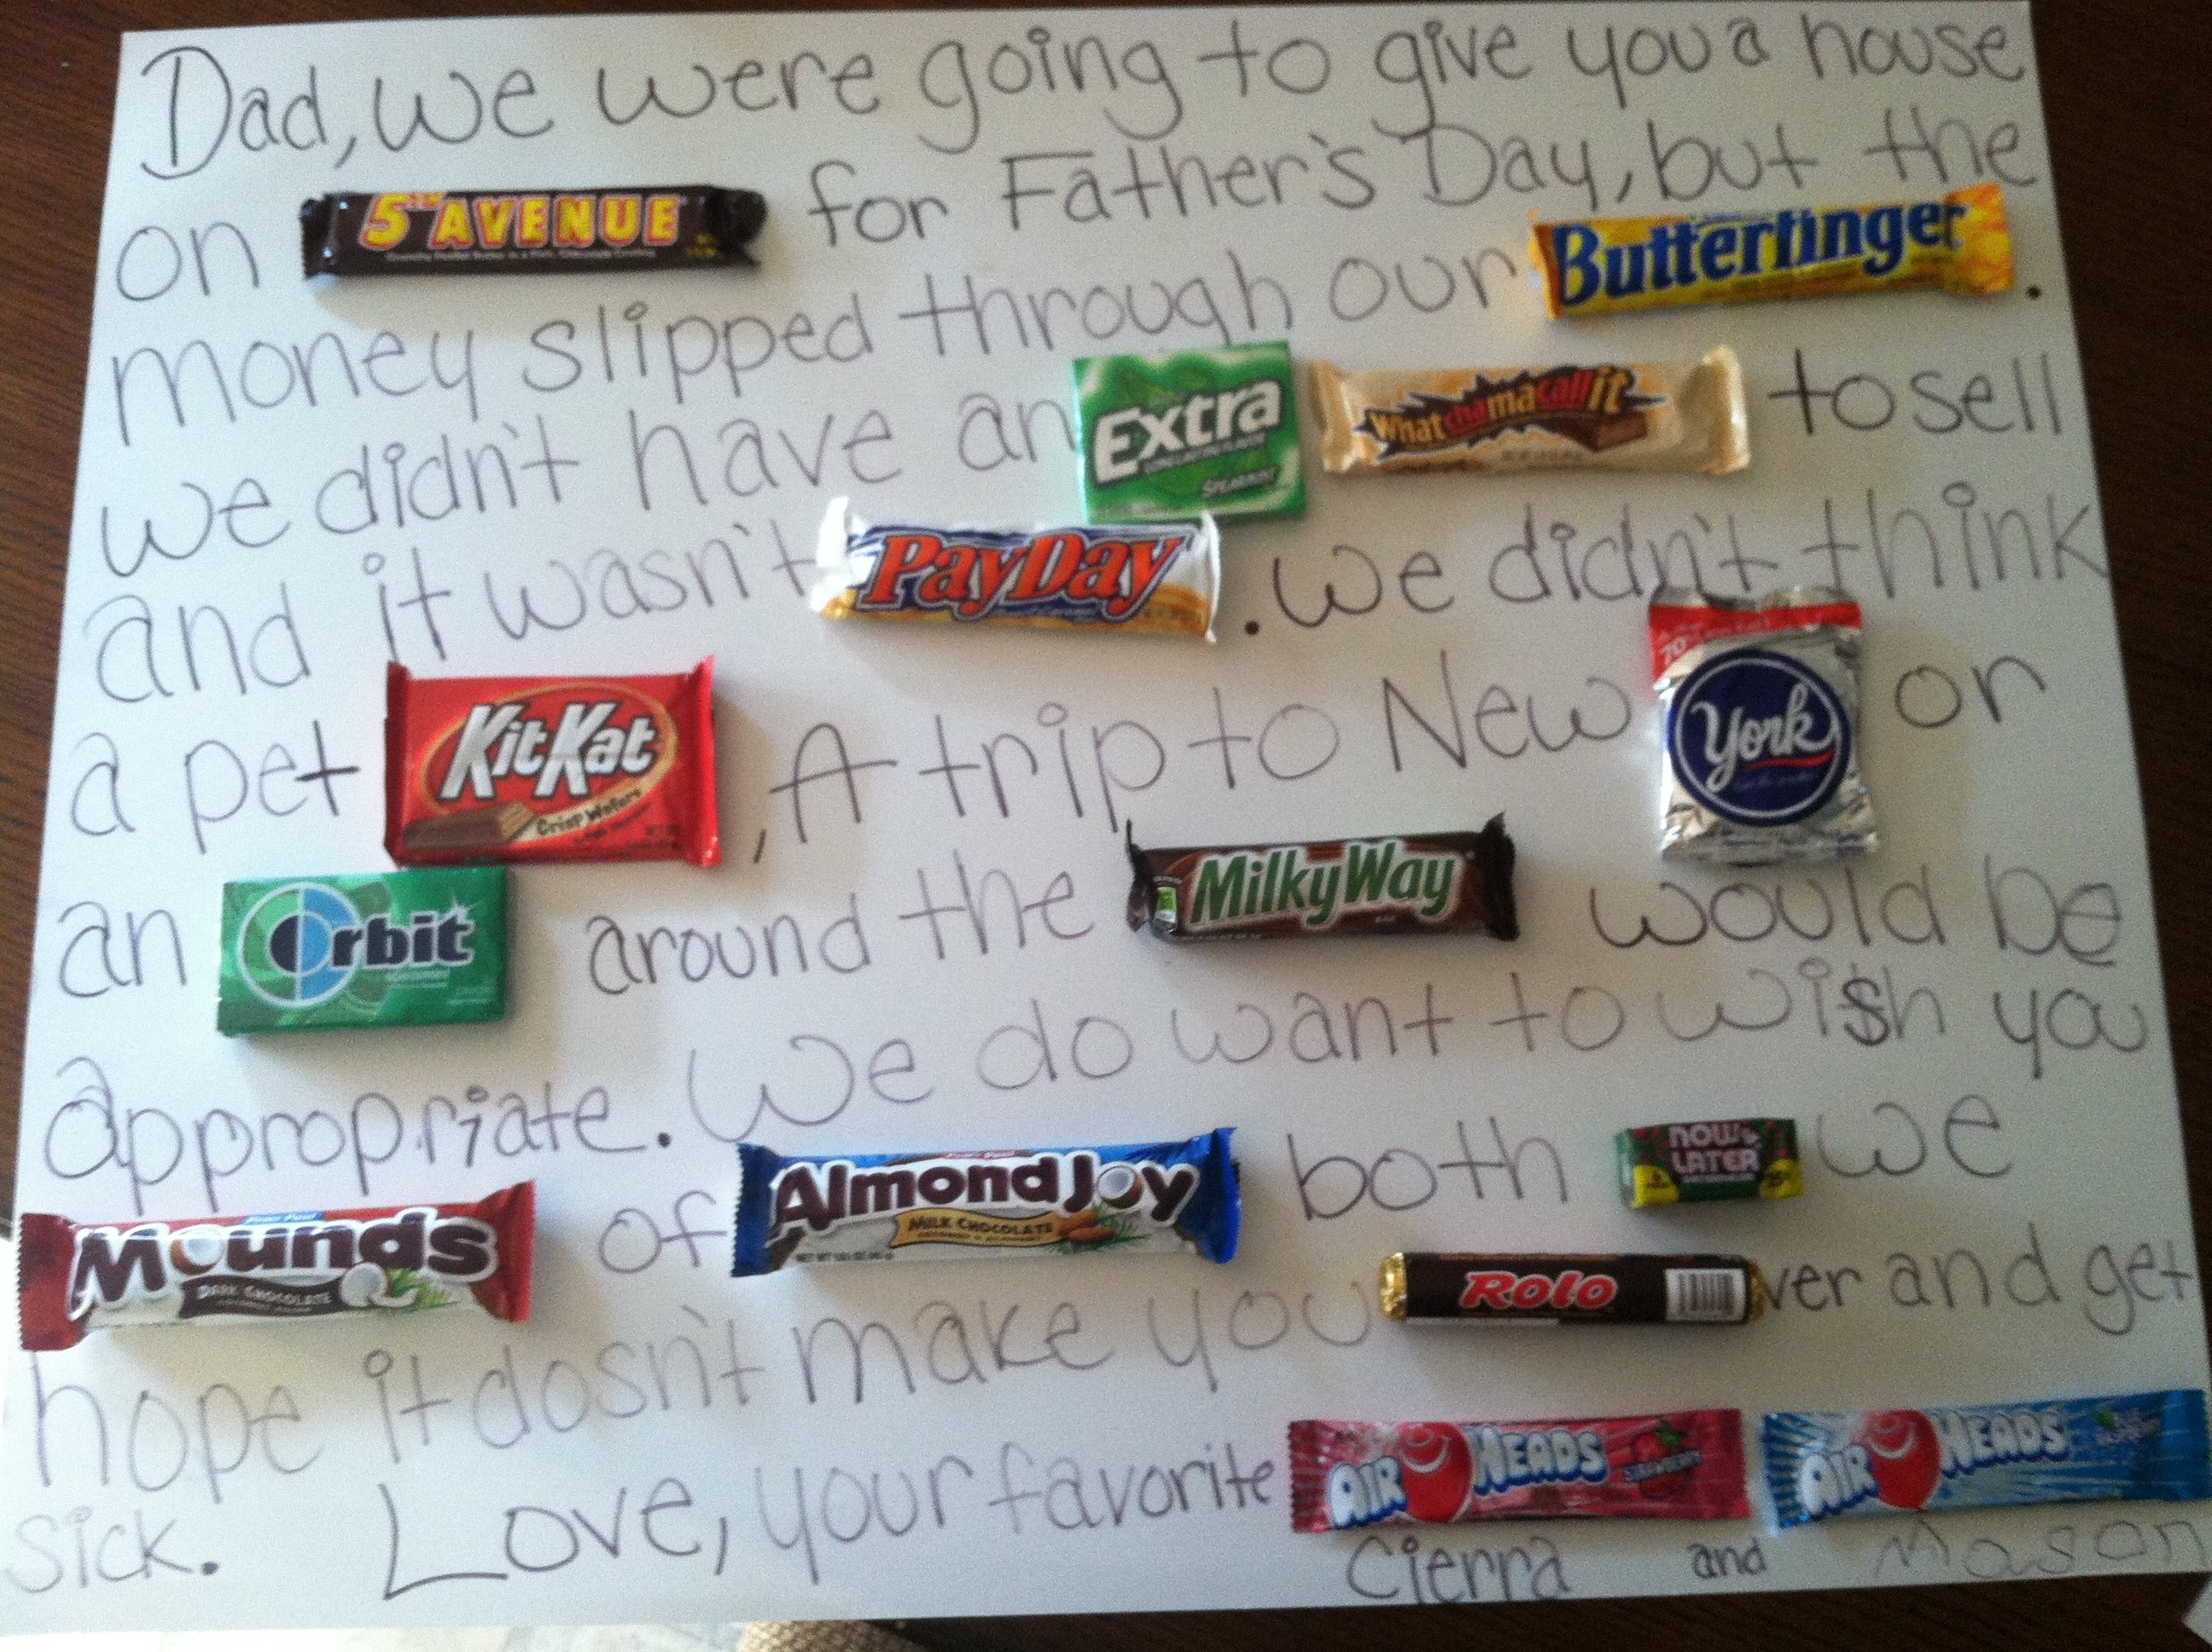 10 Nice Ideas For Dad For Christmas wemadeitgjcm gift for dad made it and ate it pinterest dads 10 2020